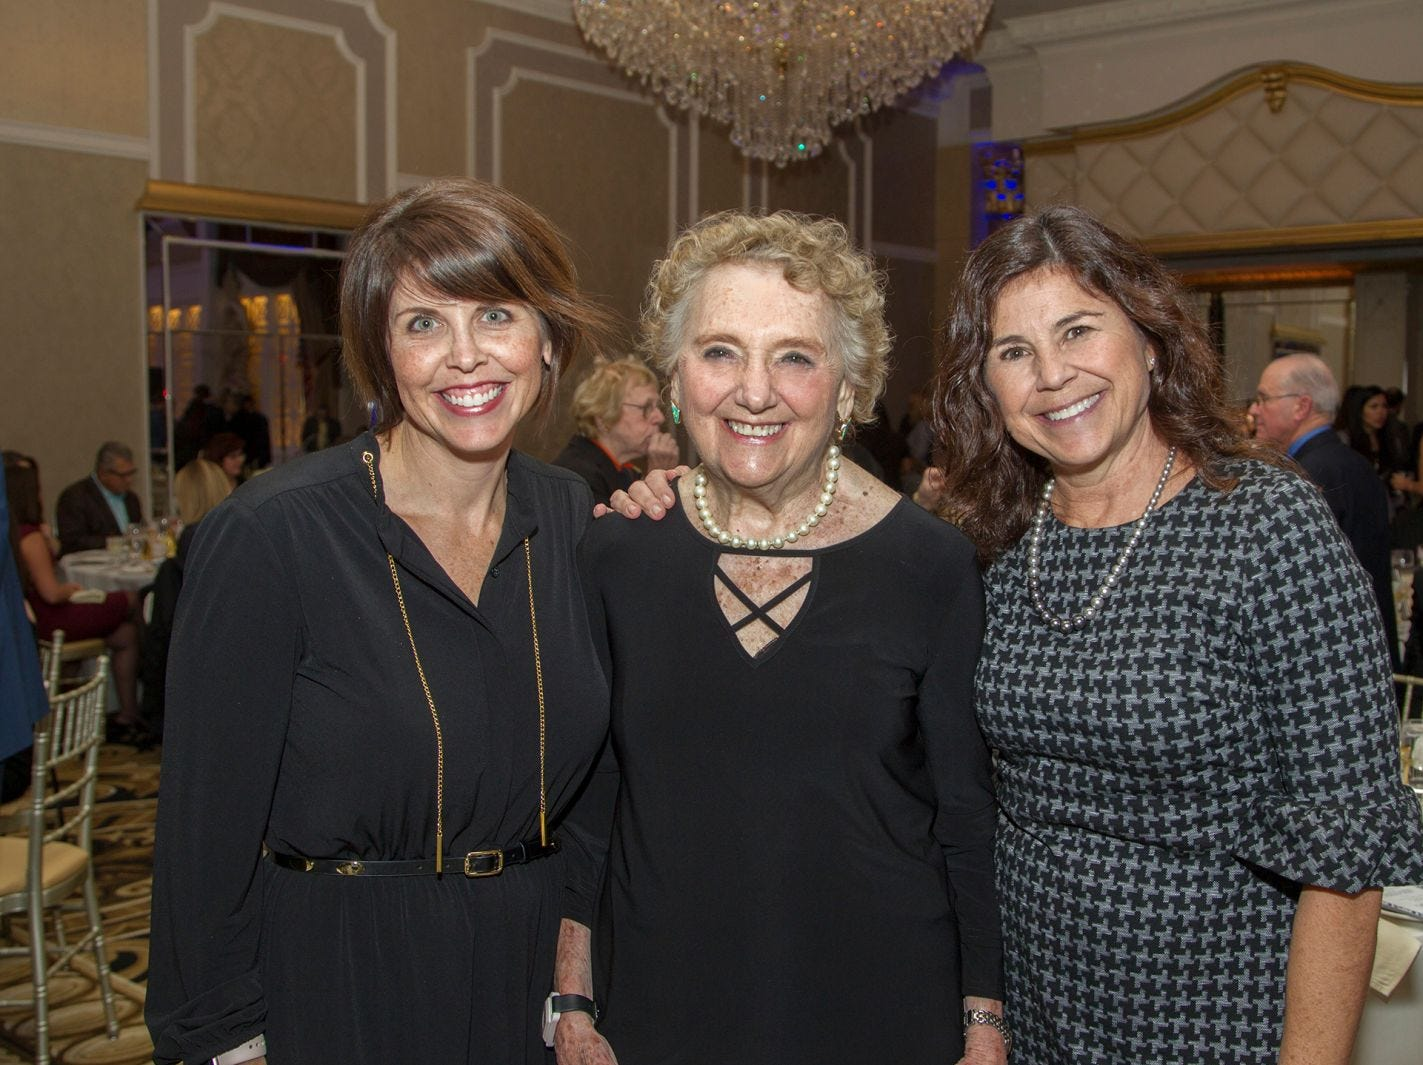 Chantelle Walker, Elaine Adler, Amy May. Holy Name Medical Center held its 2018 MS Center Awards Reception at the Venetian in Garfield. 10/23/2018